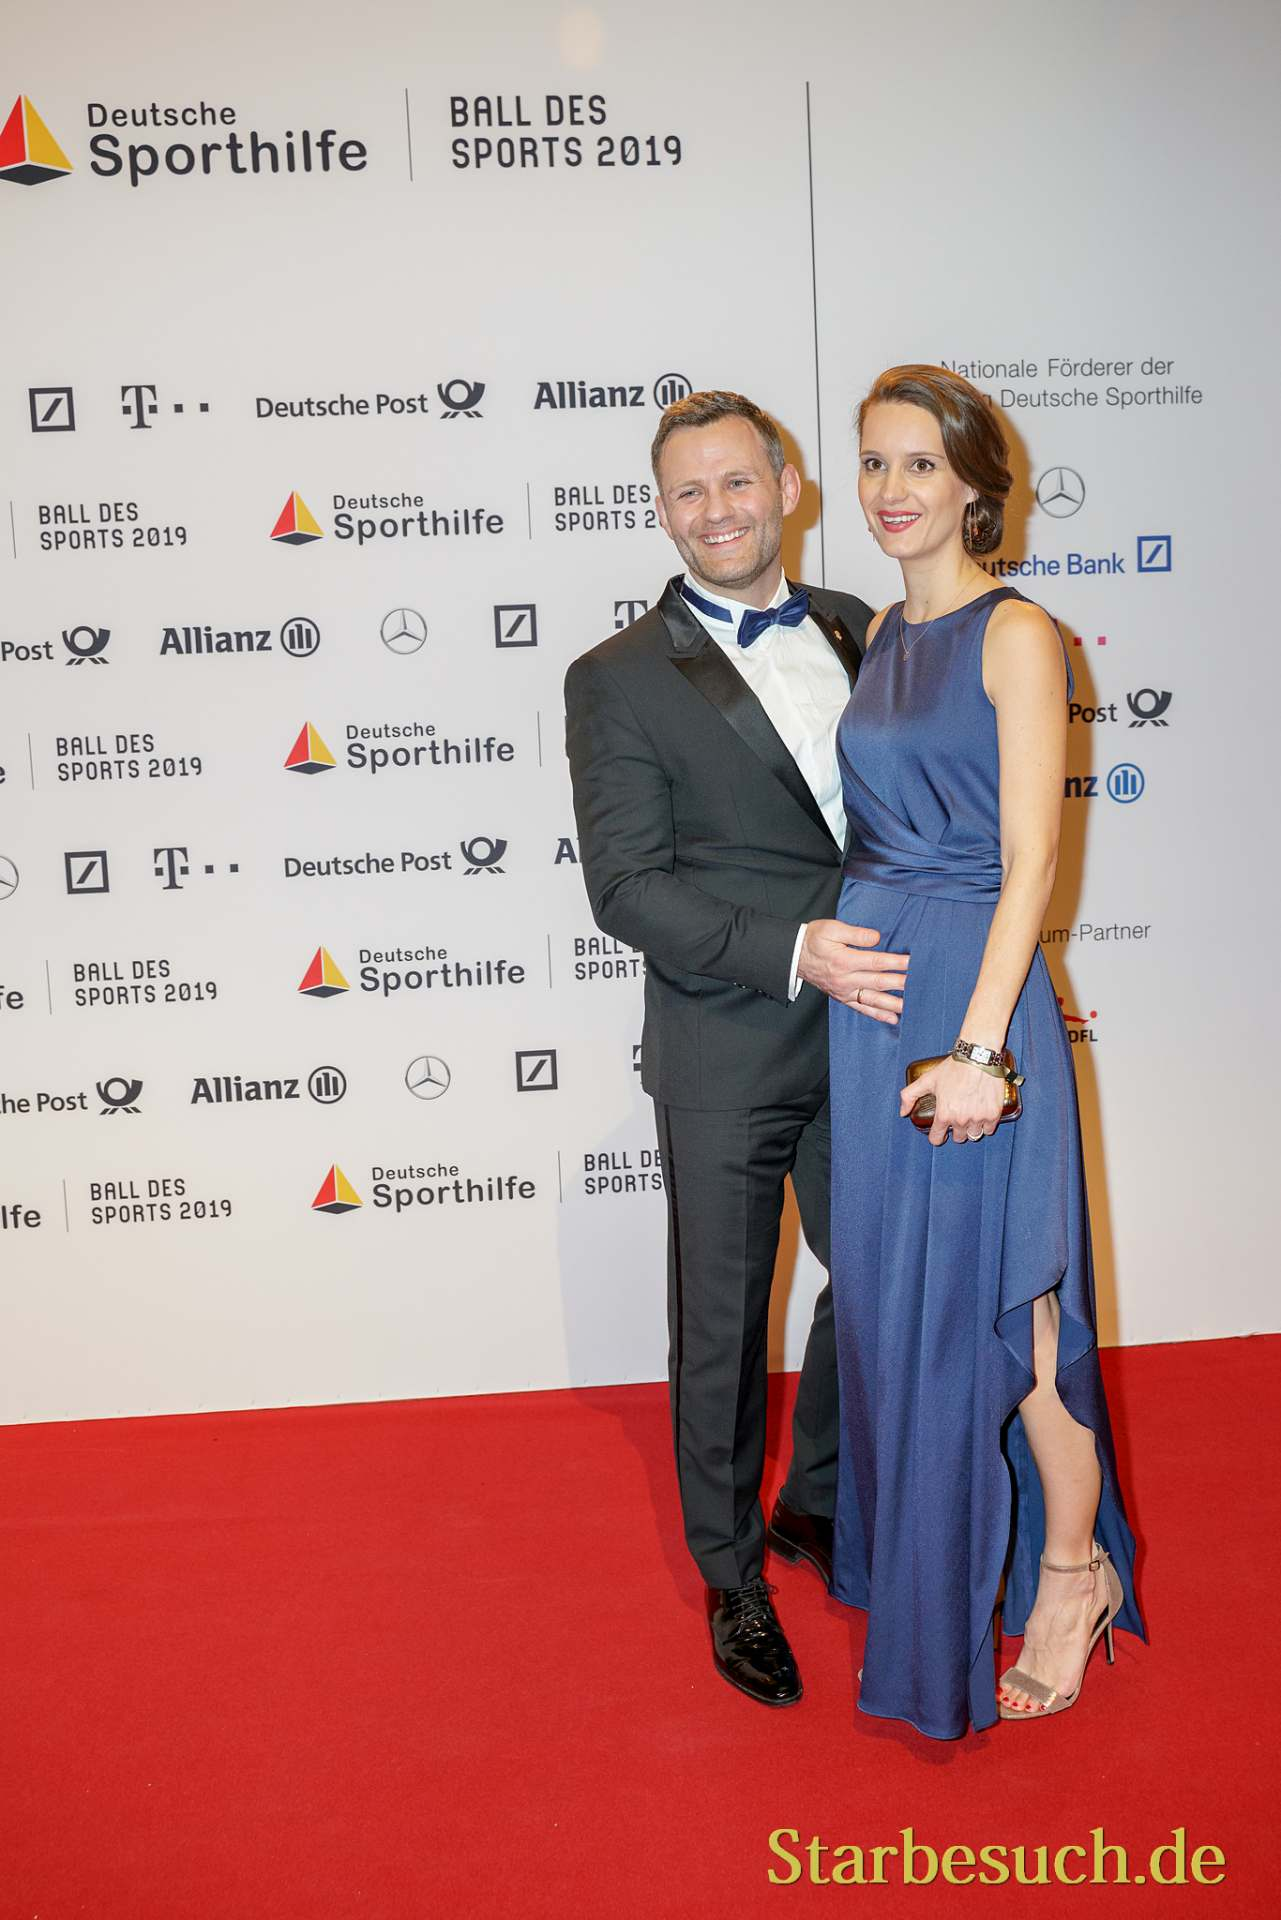 WIESBADEN, Germany - February 2nd, 2019: Ole Bischof at Ball des Sports 2019